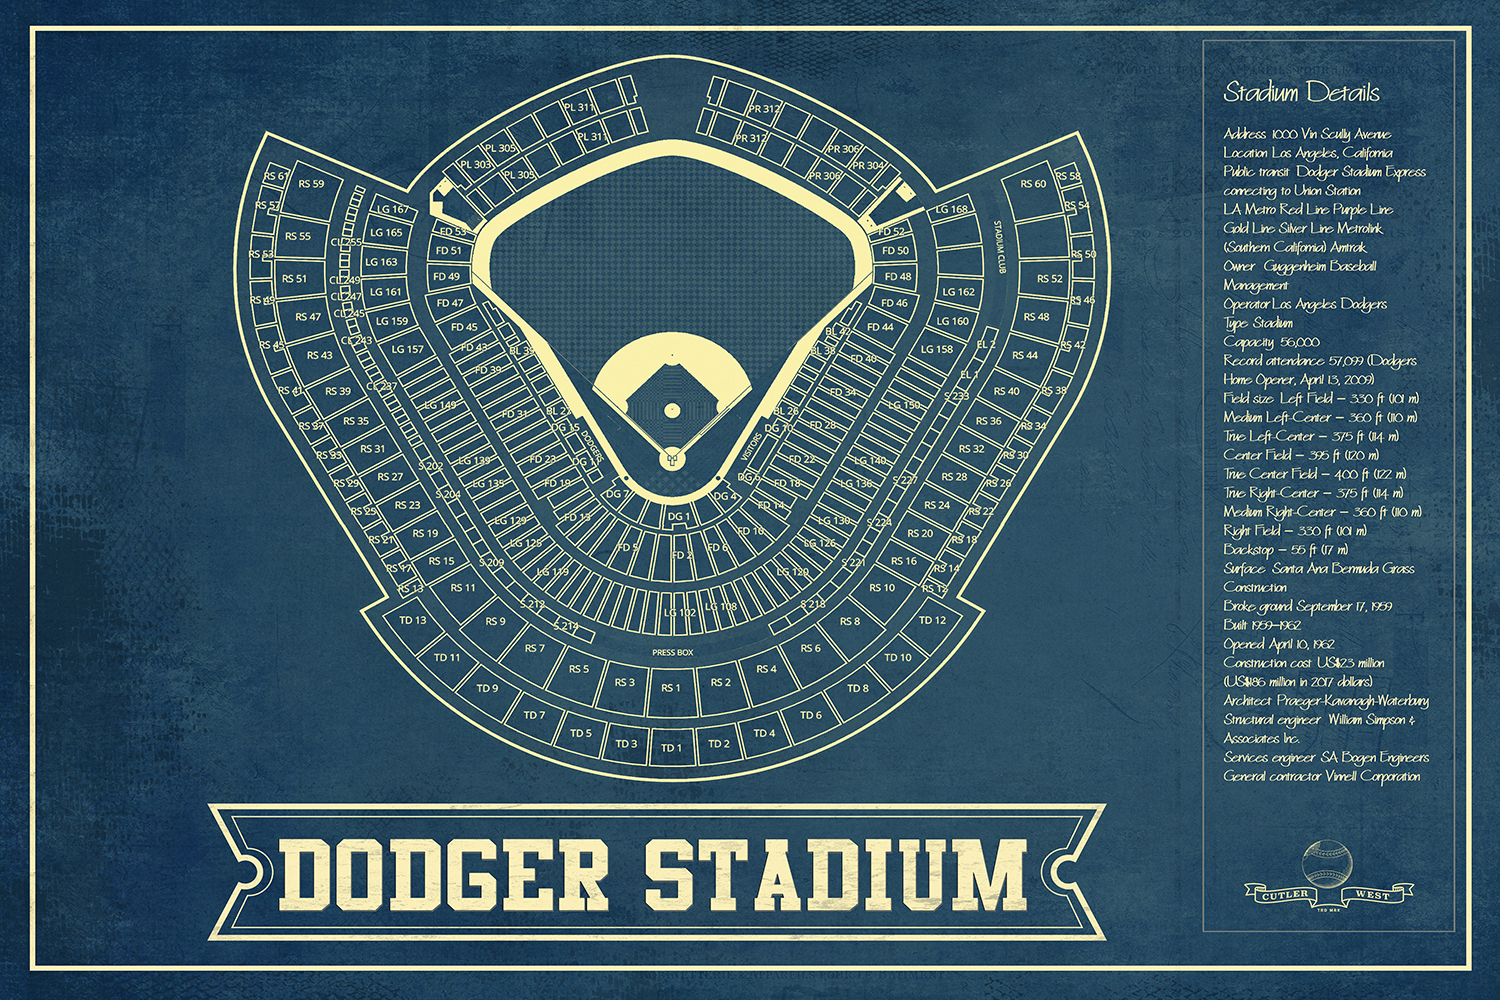 Blueprint of Dodger Stadium with stadium details on the right side